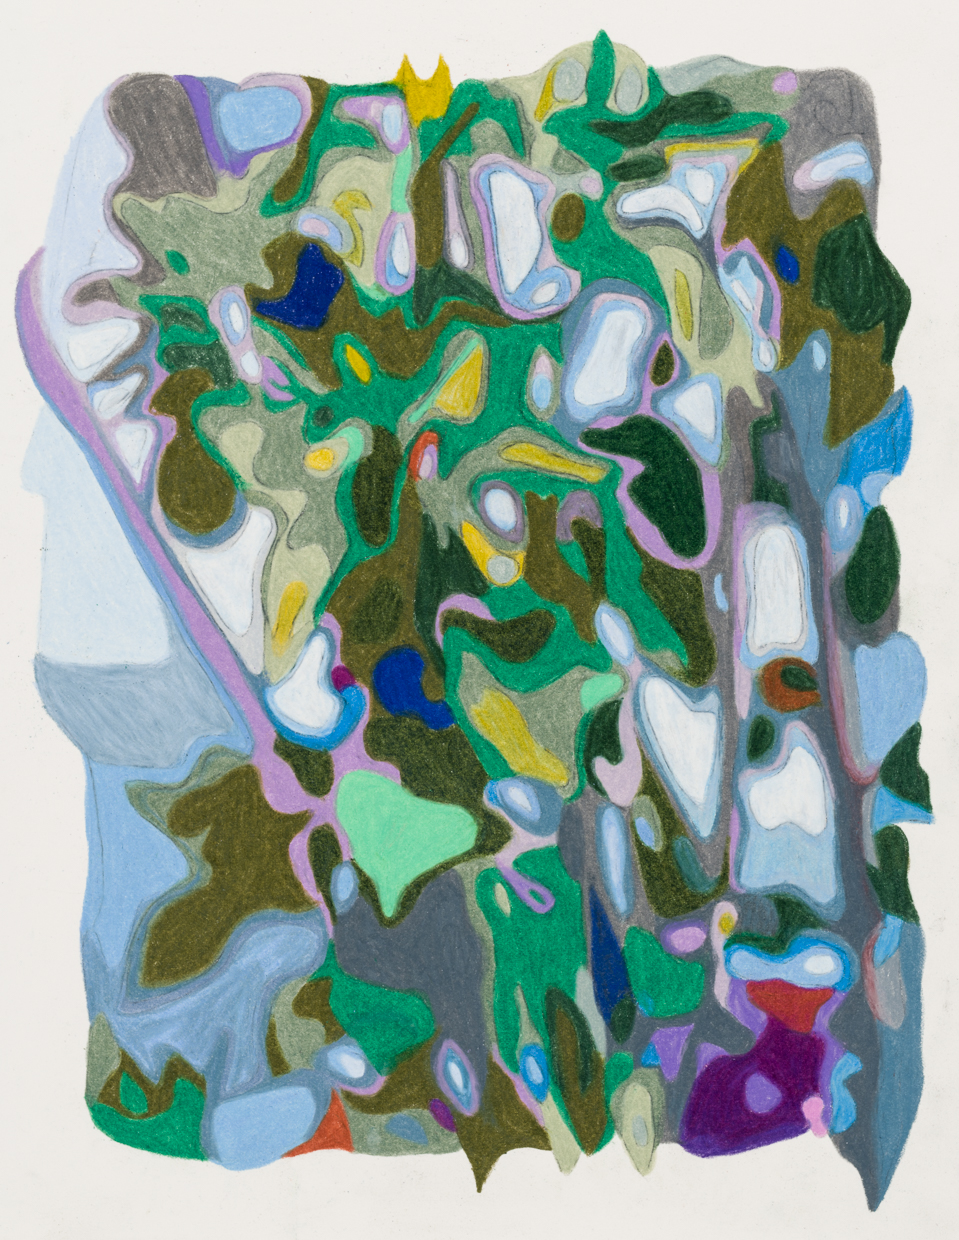 Roadside vines, Big Sur  colored pencil on paper with cutouts, 12 x 9 3/4 inches, 2019.  Photography by    Paul Takeuchi